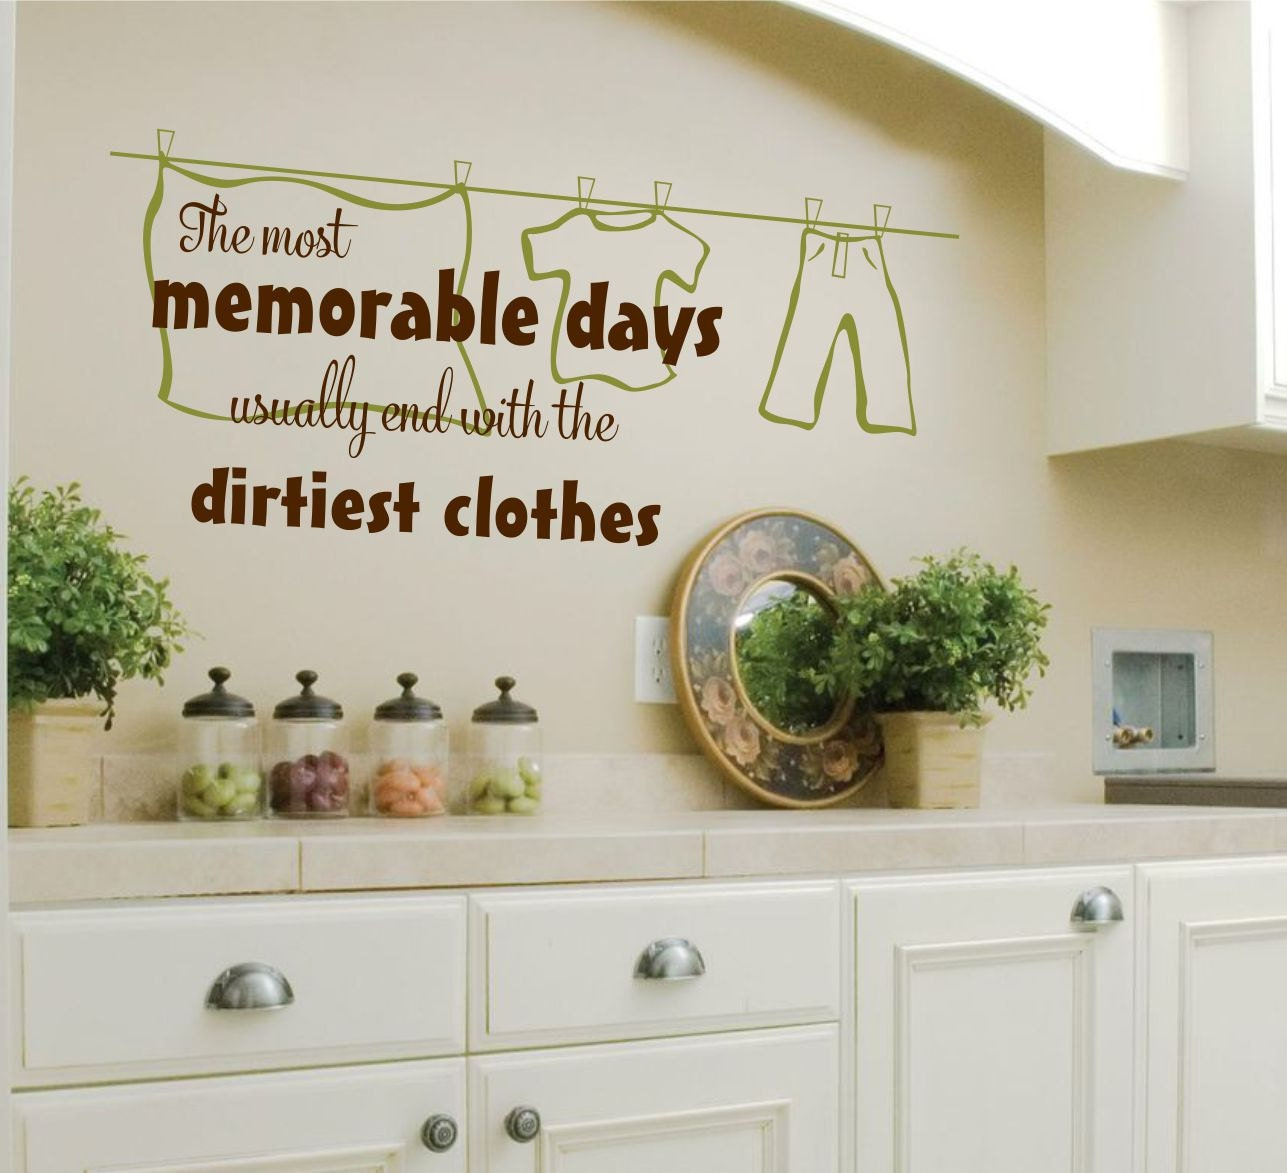 Laundry Room Wall Decal   Laundry Vinyl Wall Decal   Laundry Room Decor    The Most Memorable